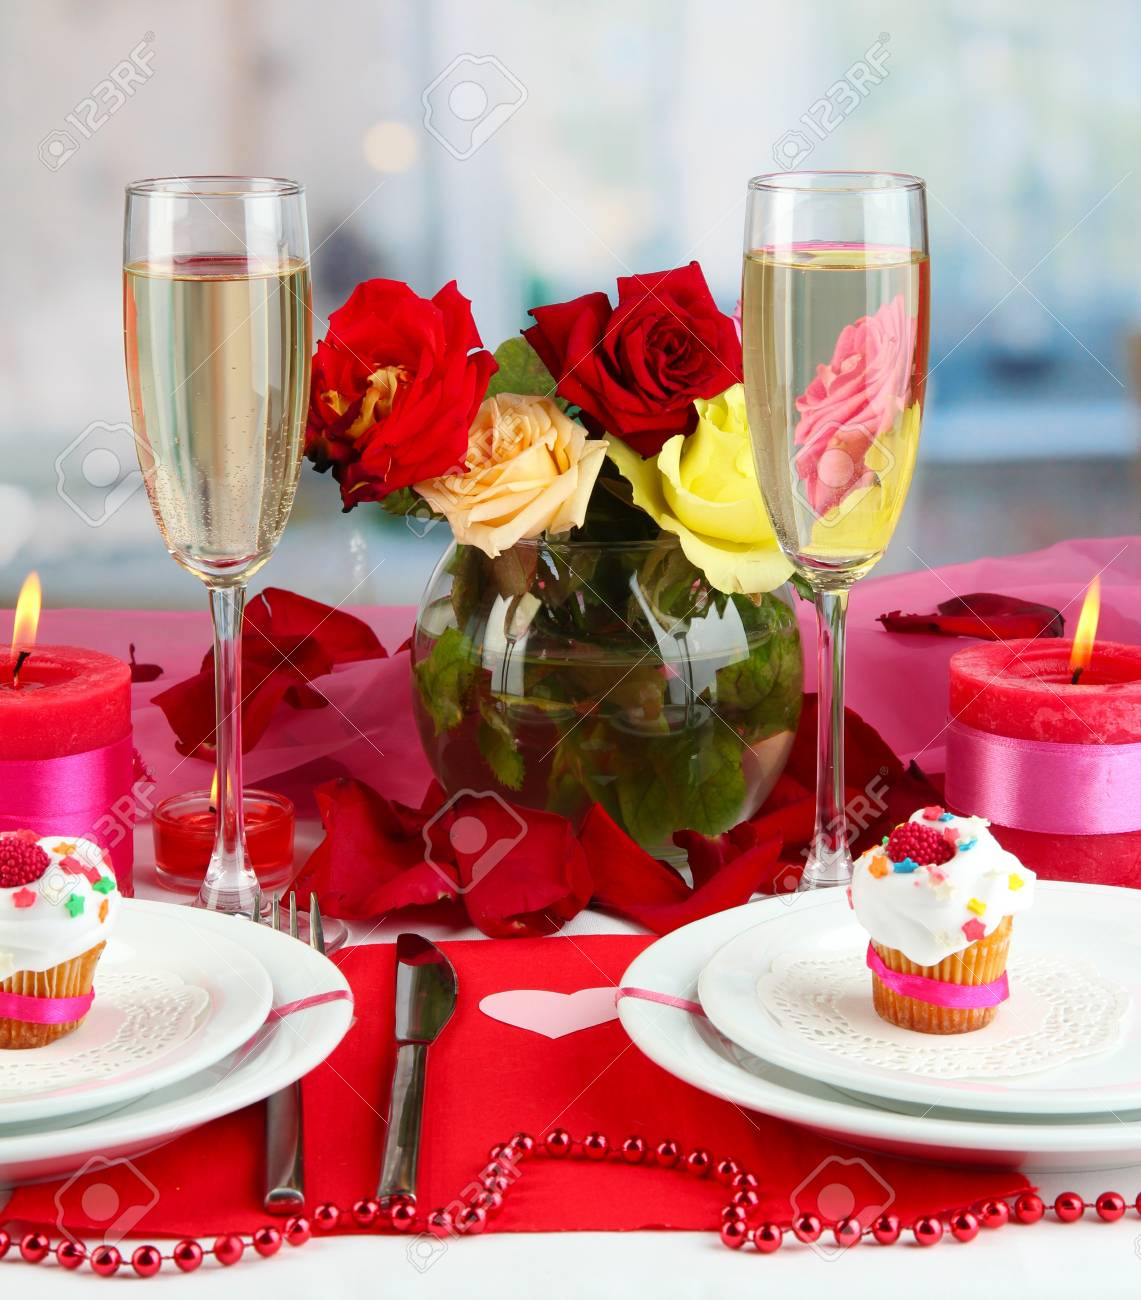 Stock Photo   Table Setting In Honor Of Valentineu0027s Day On Room Background